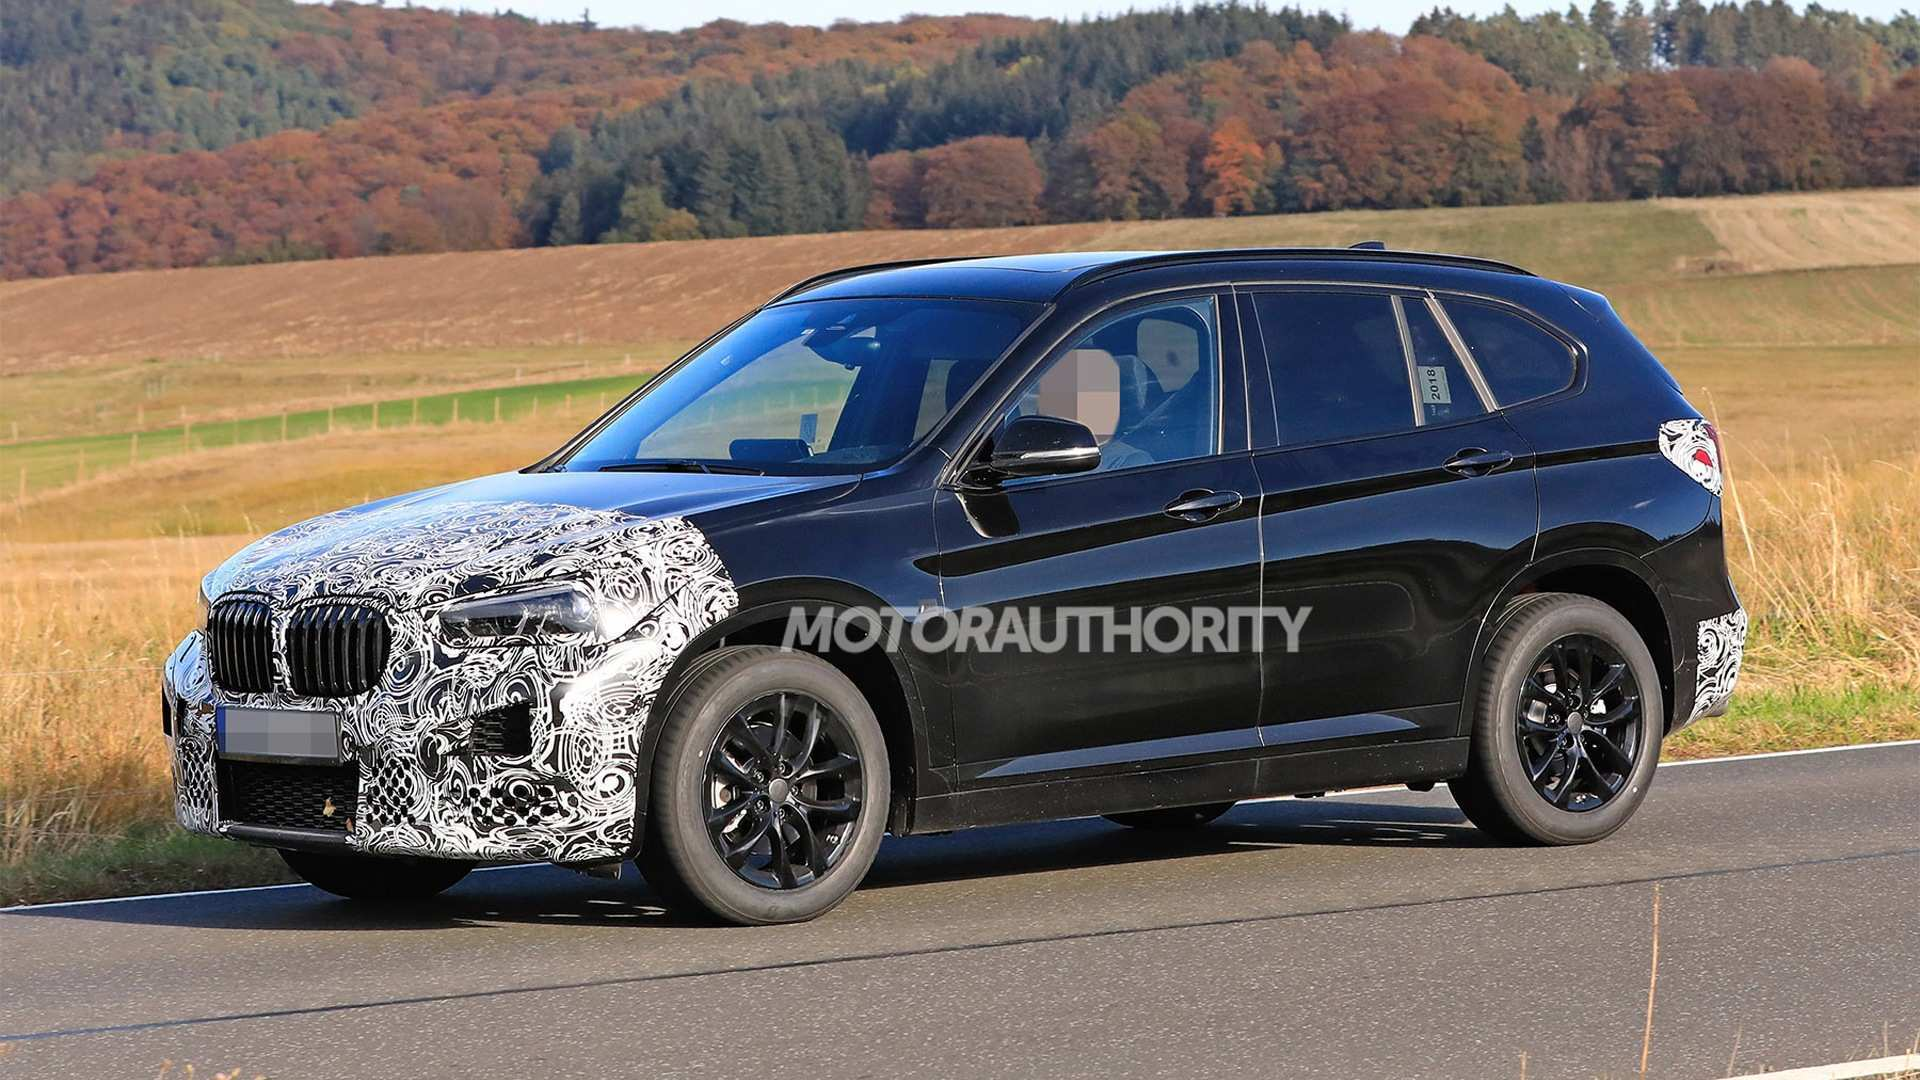 55 All New 2020 BMW X1 Style